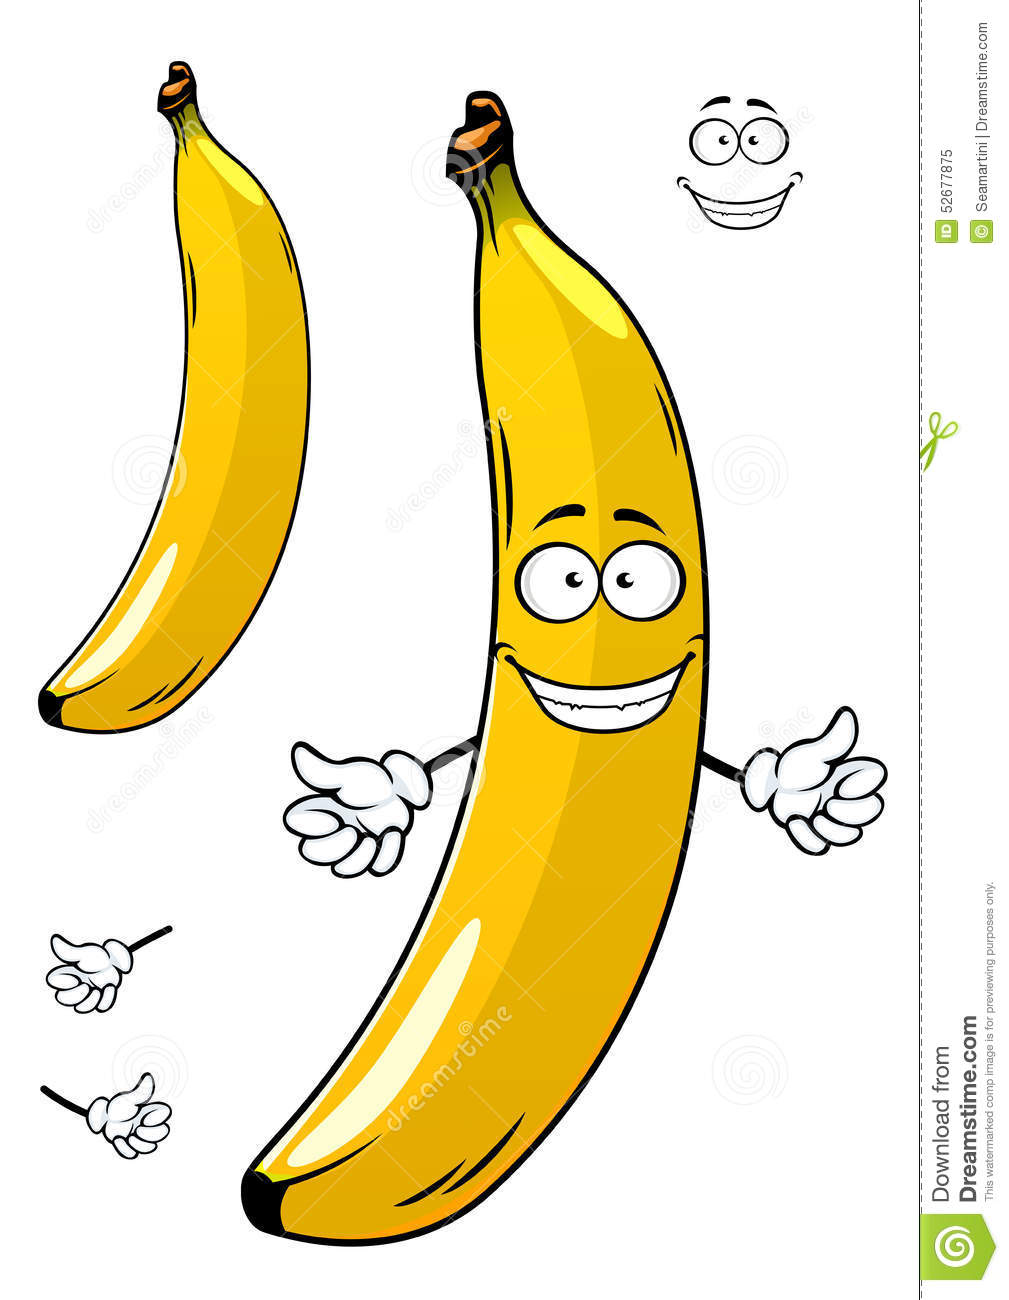 Stock Illustration Cartoon Ripe Yellow Banana Fruit Sunny Character Funny Smiling Face Isolated White Background Image52677875 on banana cartoon character